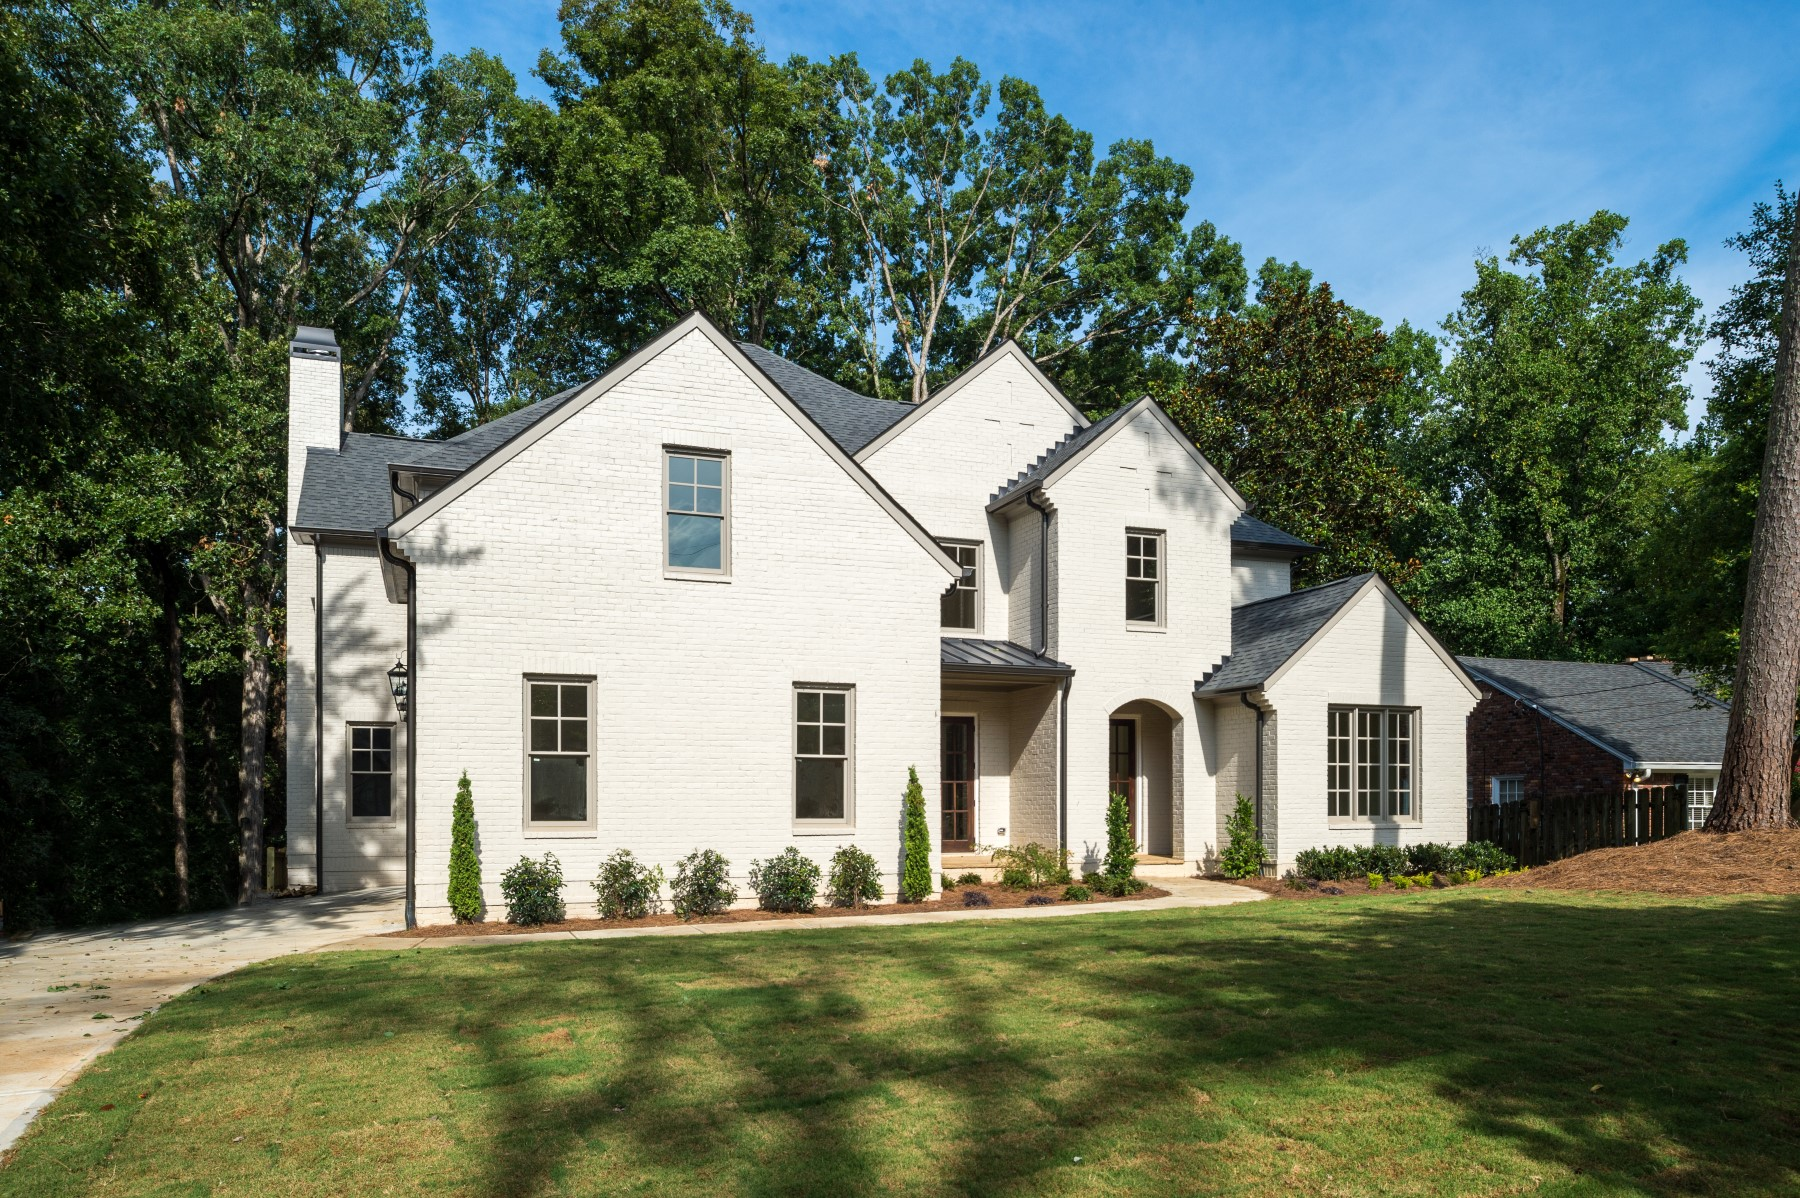 Single Family Home for Active at Brand New With Three Car Garage In The Heart Of CastlewoodBuckhead 3059 Rhodenhaven Drive Atlanta, Georgia 30327 United States